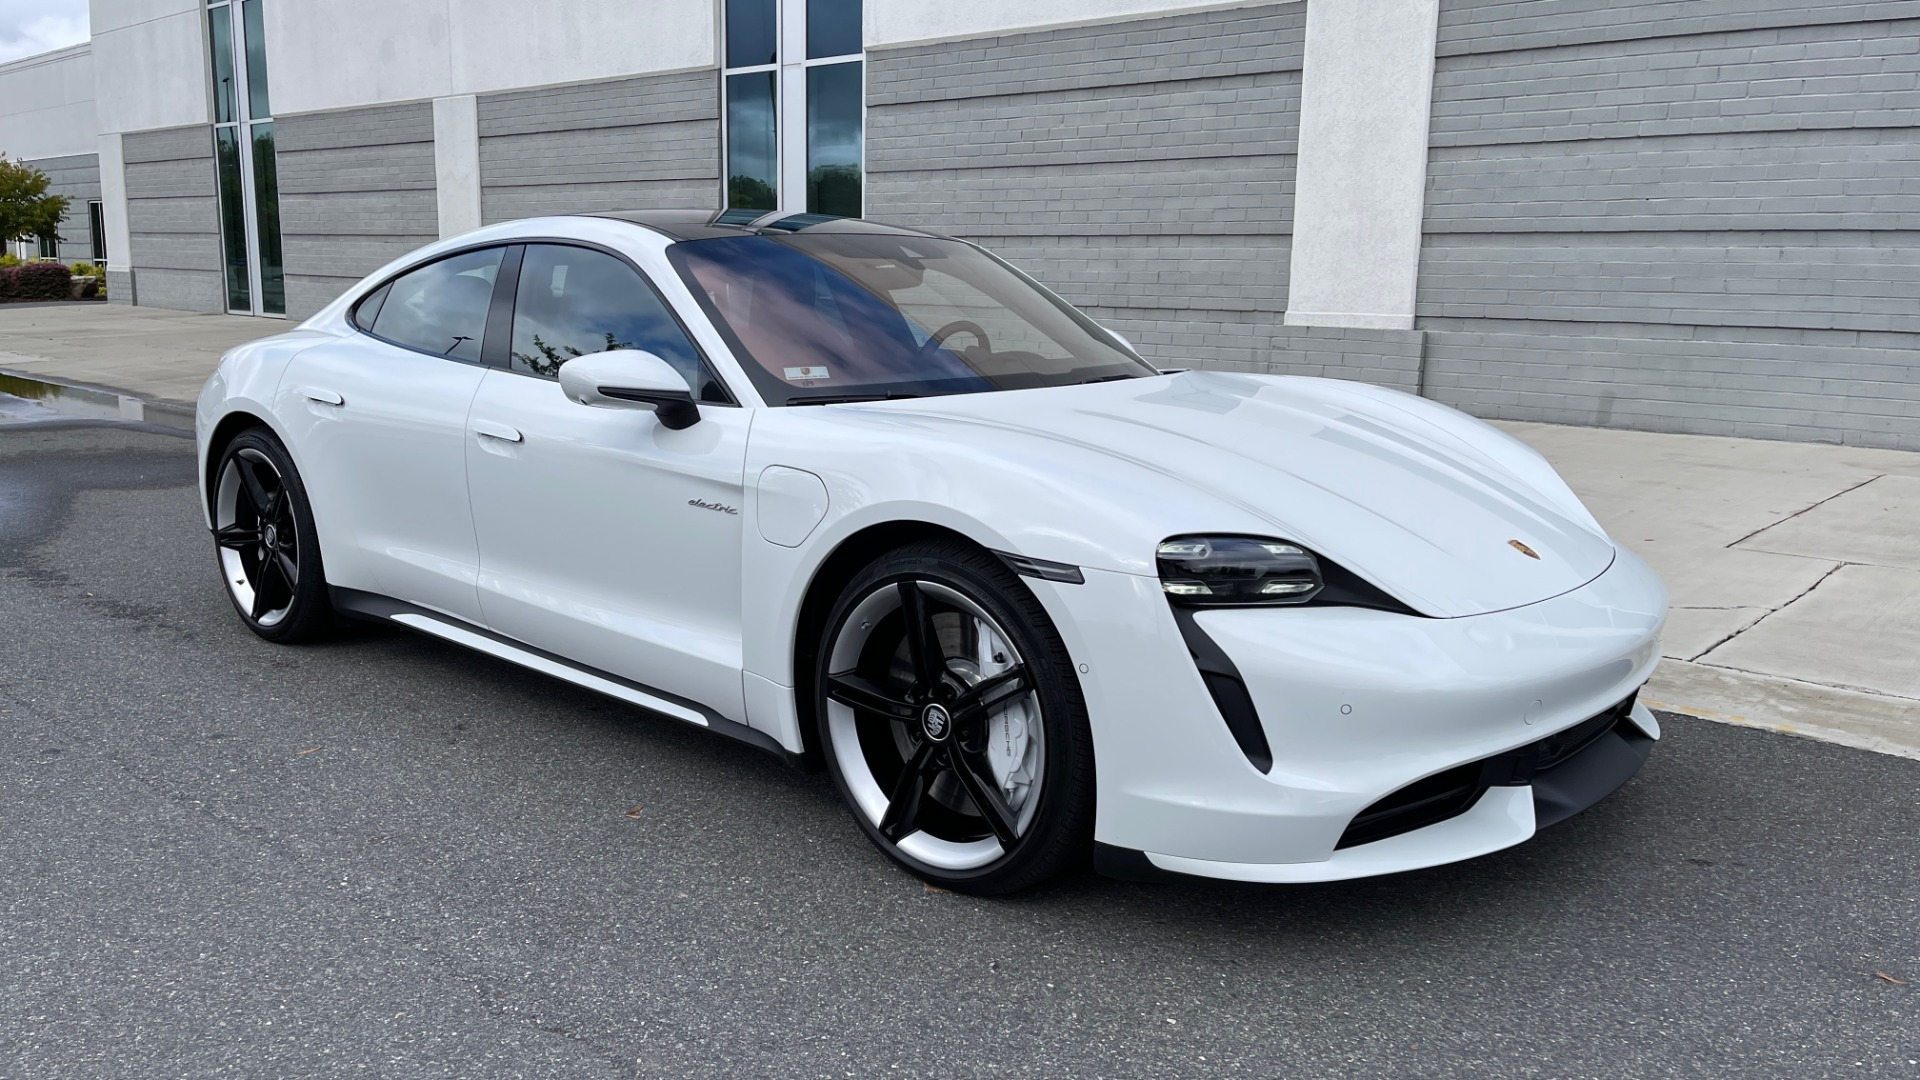 Used 2020 Porsche TAYCAN TURBO SEDAN / AWD / NAV / BOSE / PANO-ROOF / LCA / SURROUND VIEW for sale $162,995 at Formula Imports in Charlotte NC 28227 7